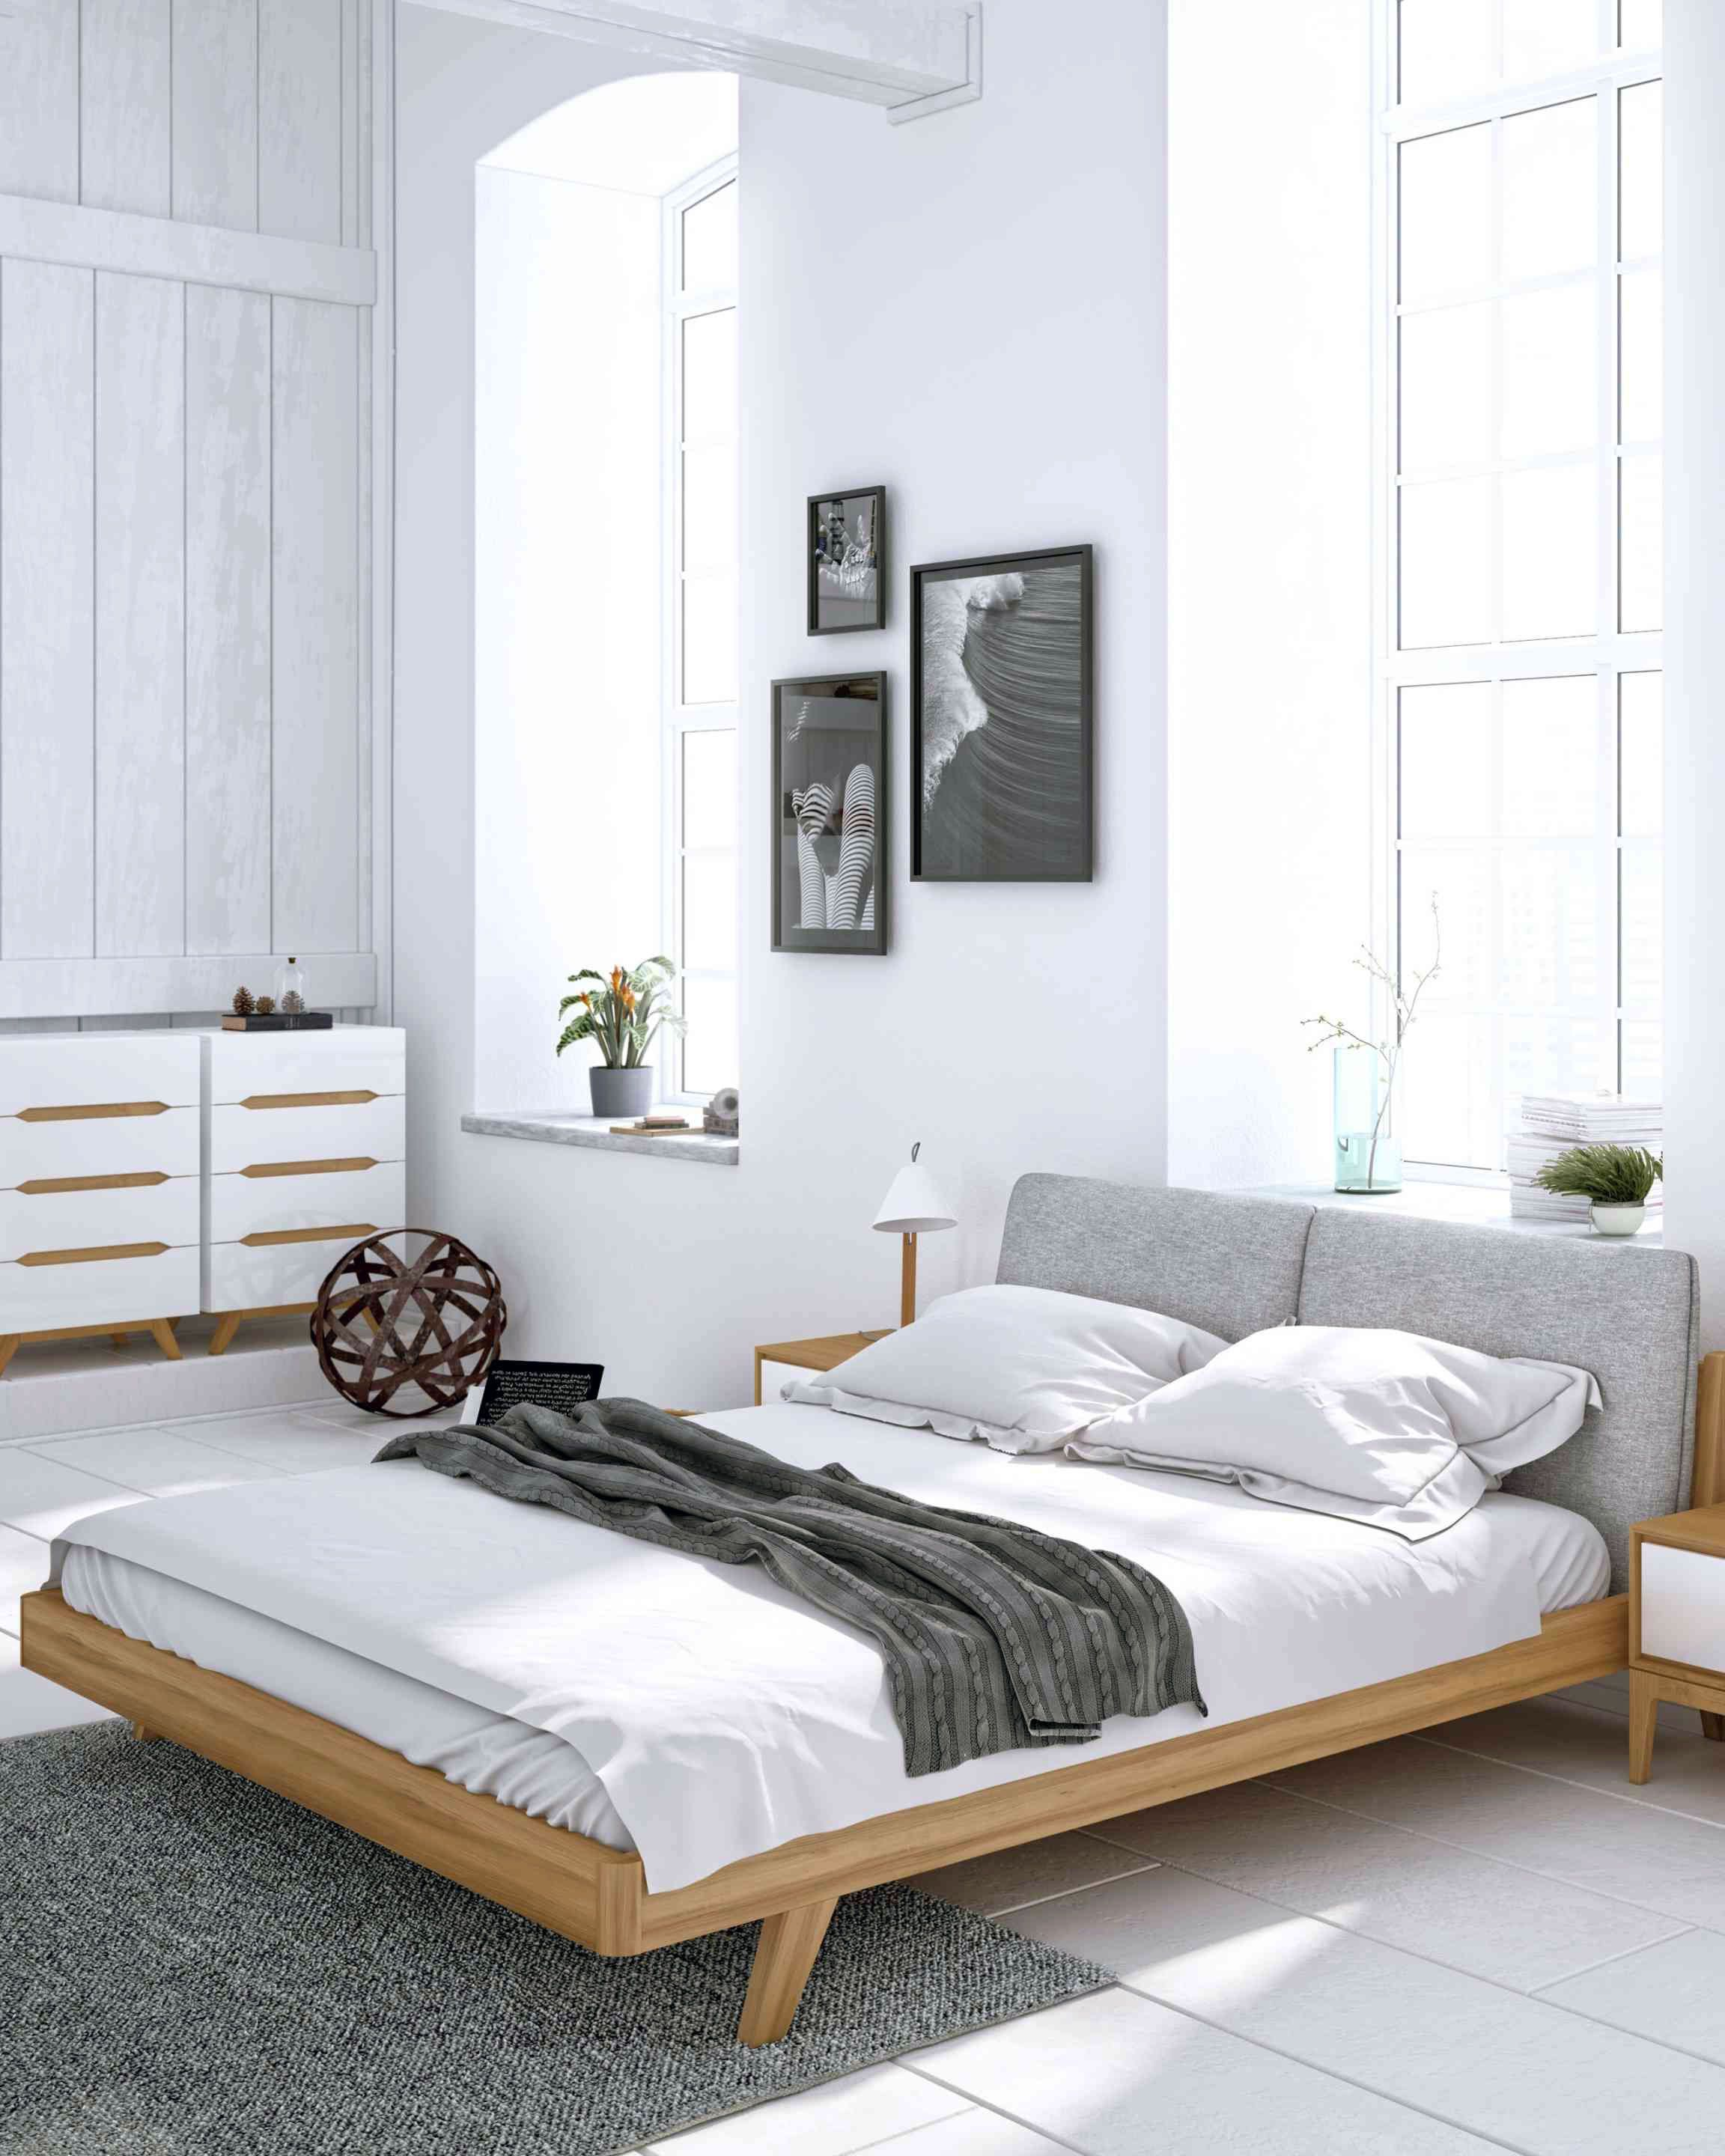 24 Bed Ideas For Scandinavian Bedroom In 2020 Scandinavian Bedroom Decor Contemporary Bedroom Furniture Modern Contemporary Bedroom Furniture